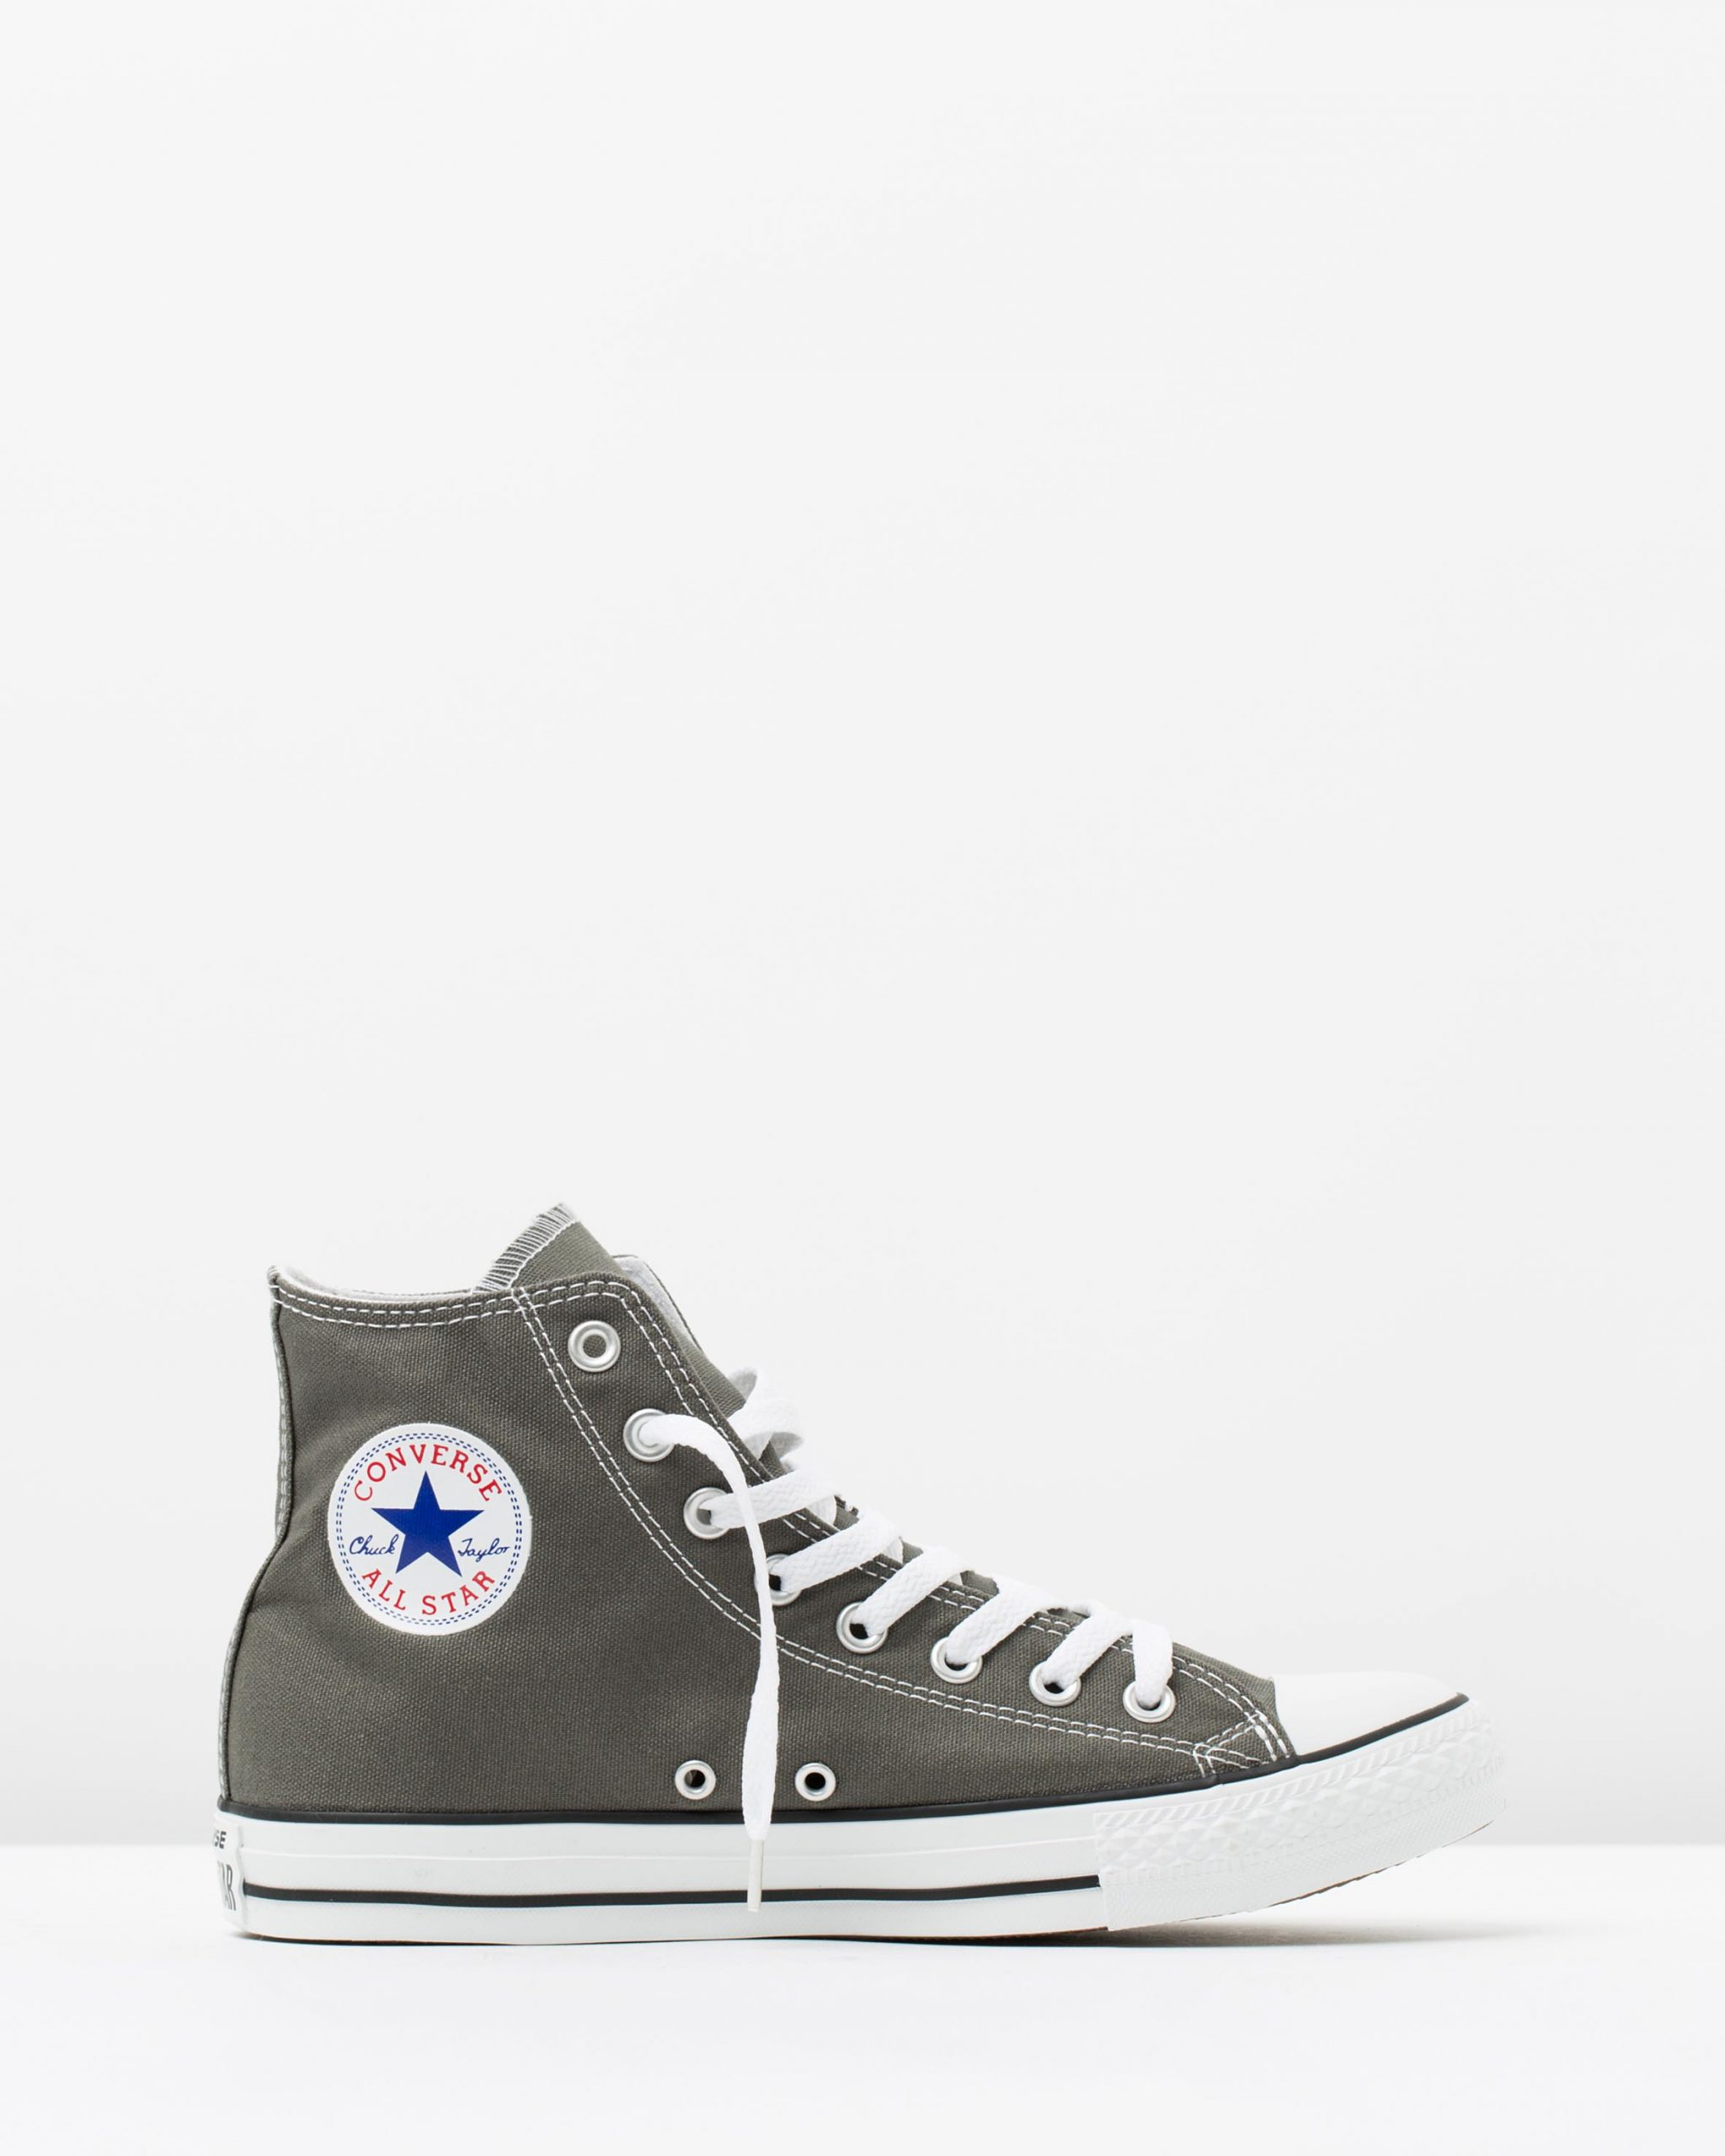 Converse Chuck Taylor All Star Hi Womens Charcoal